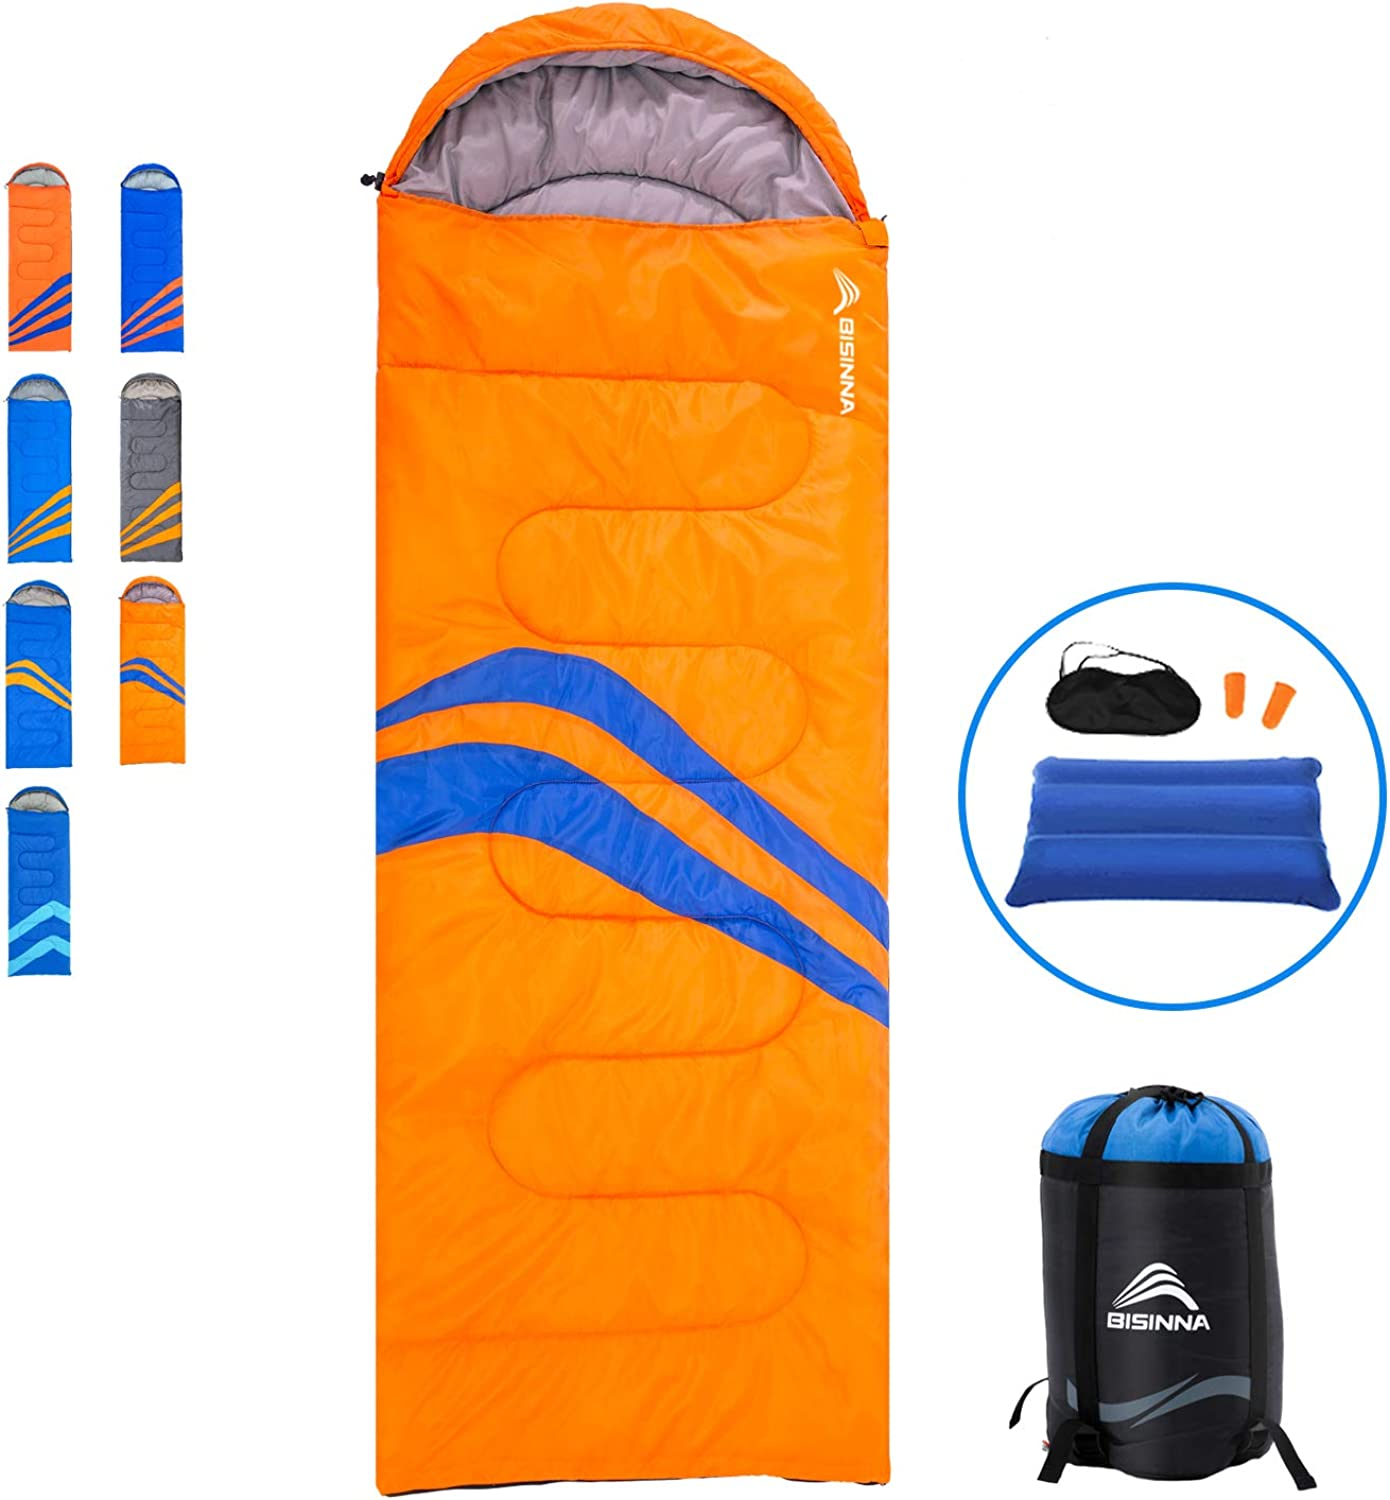 Adults BISINNA Camping Sleeping Bag for Indoor and Outdoor Use Hiking Waterproof Lightweight and Compact Sleeping Bags for Traveling Boys Backpacking Great for Kids,Girls Teens